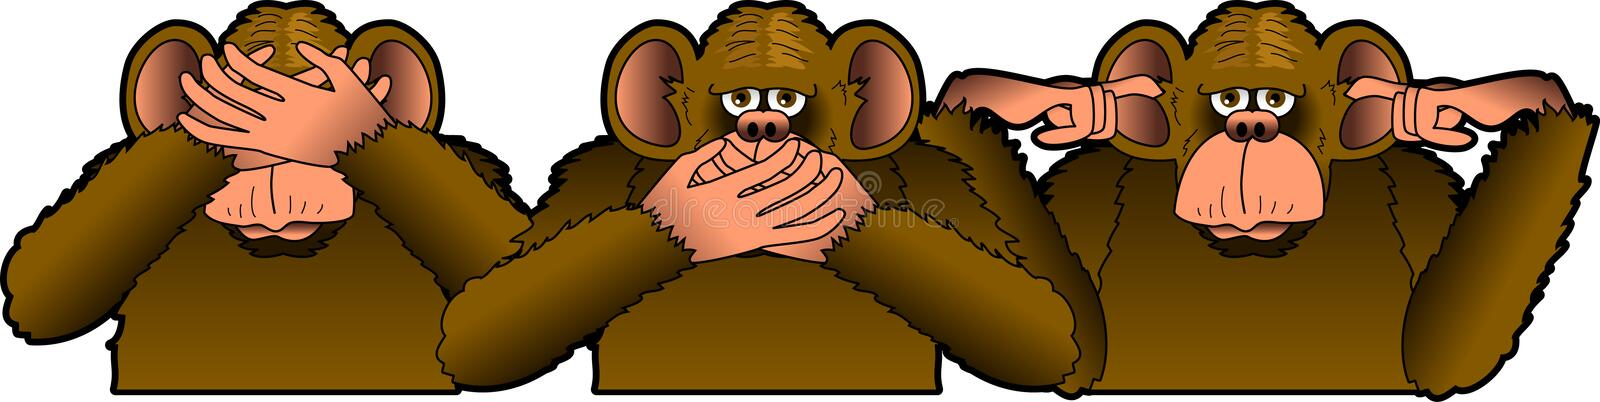 Three_Wise_Monkeys. Raster graphic depicting a cartoon of the THREE WISE MONKEYS stock illustration